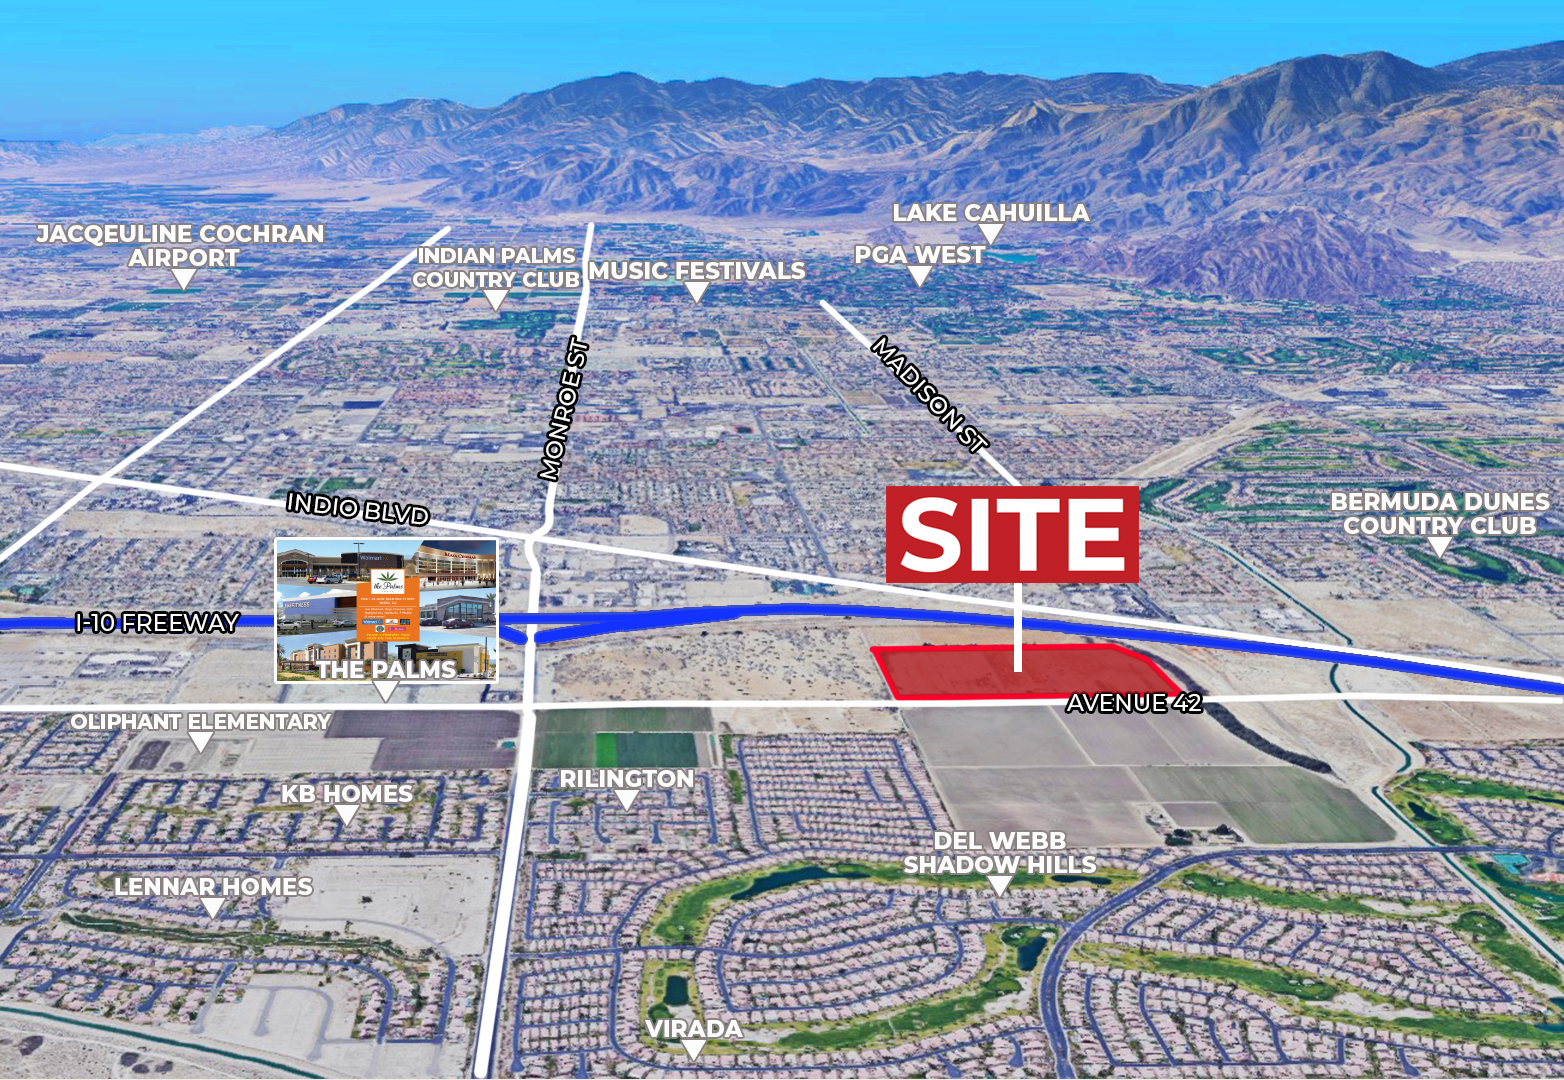 61 AC Ave 42 & I-10, IN Featured Web